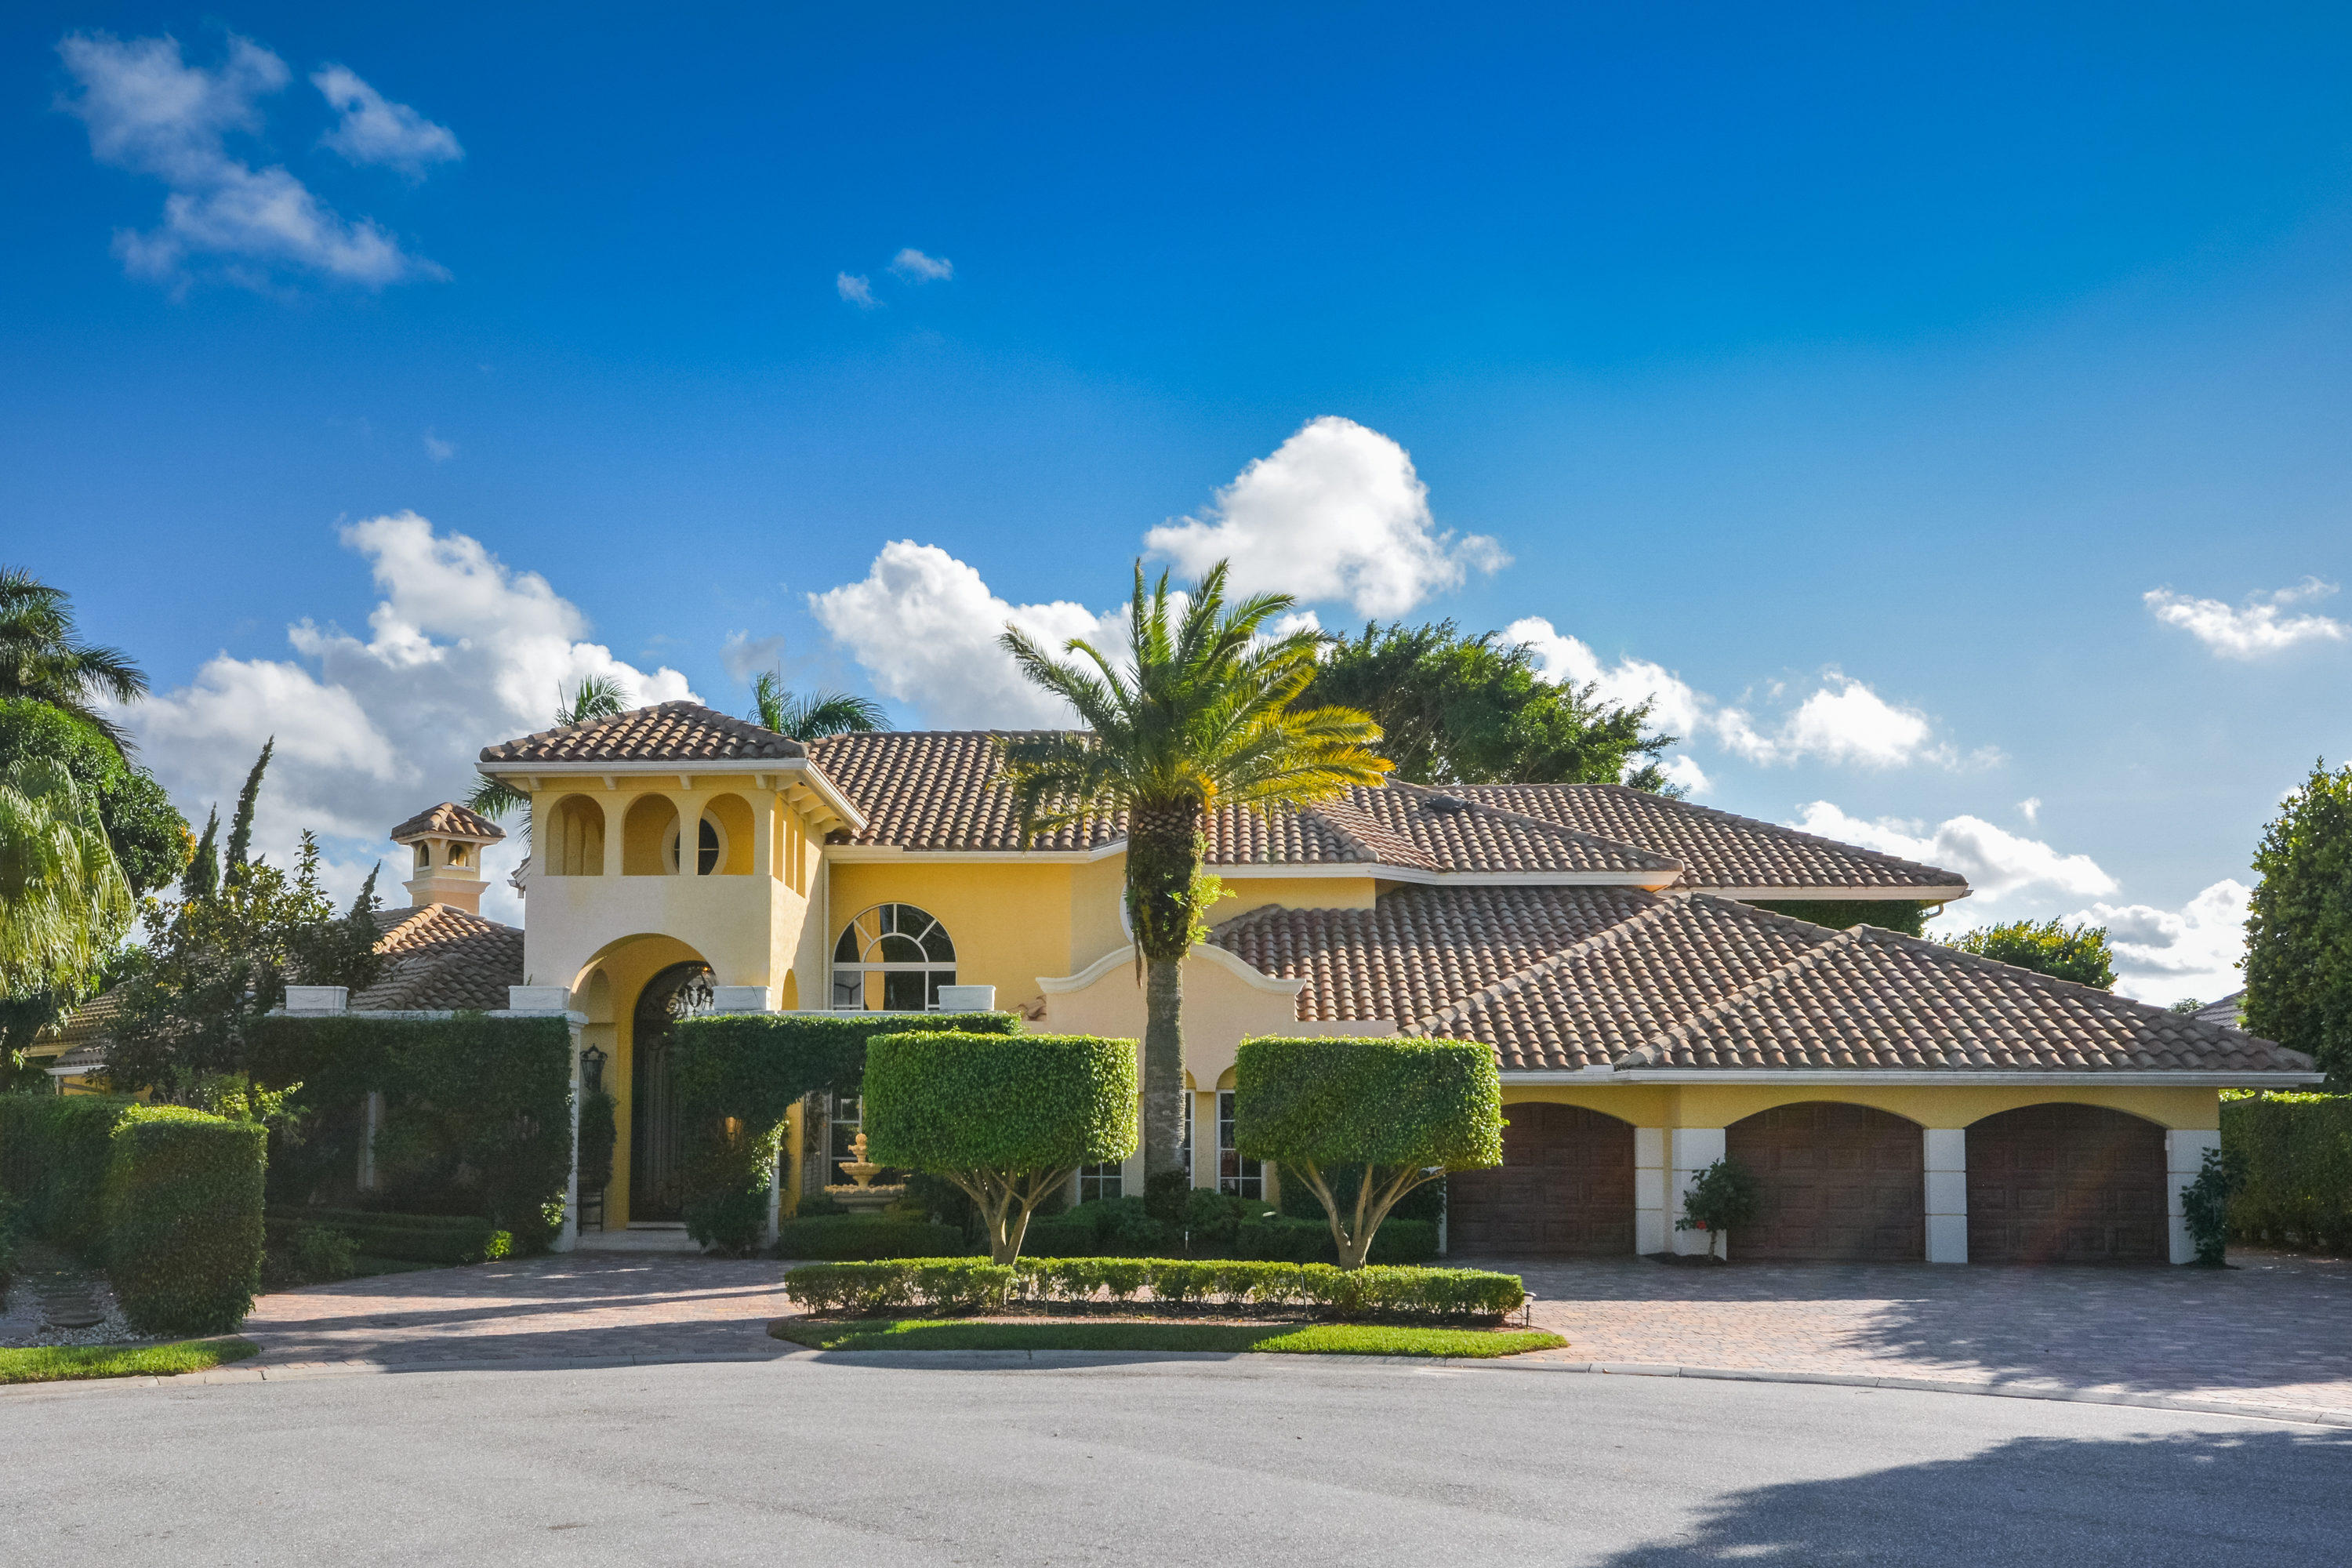 17843 Argyll Terrace, Boca Raton, Florida 33496, 4 Bedrooms Bedrooms, ,7.1 BathroomsBathrooms,Single Family,For Sale,ST ANDREWS COUNTRY CLUB,Argyll,RX-10323805